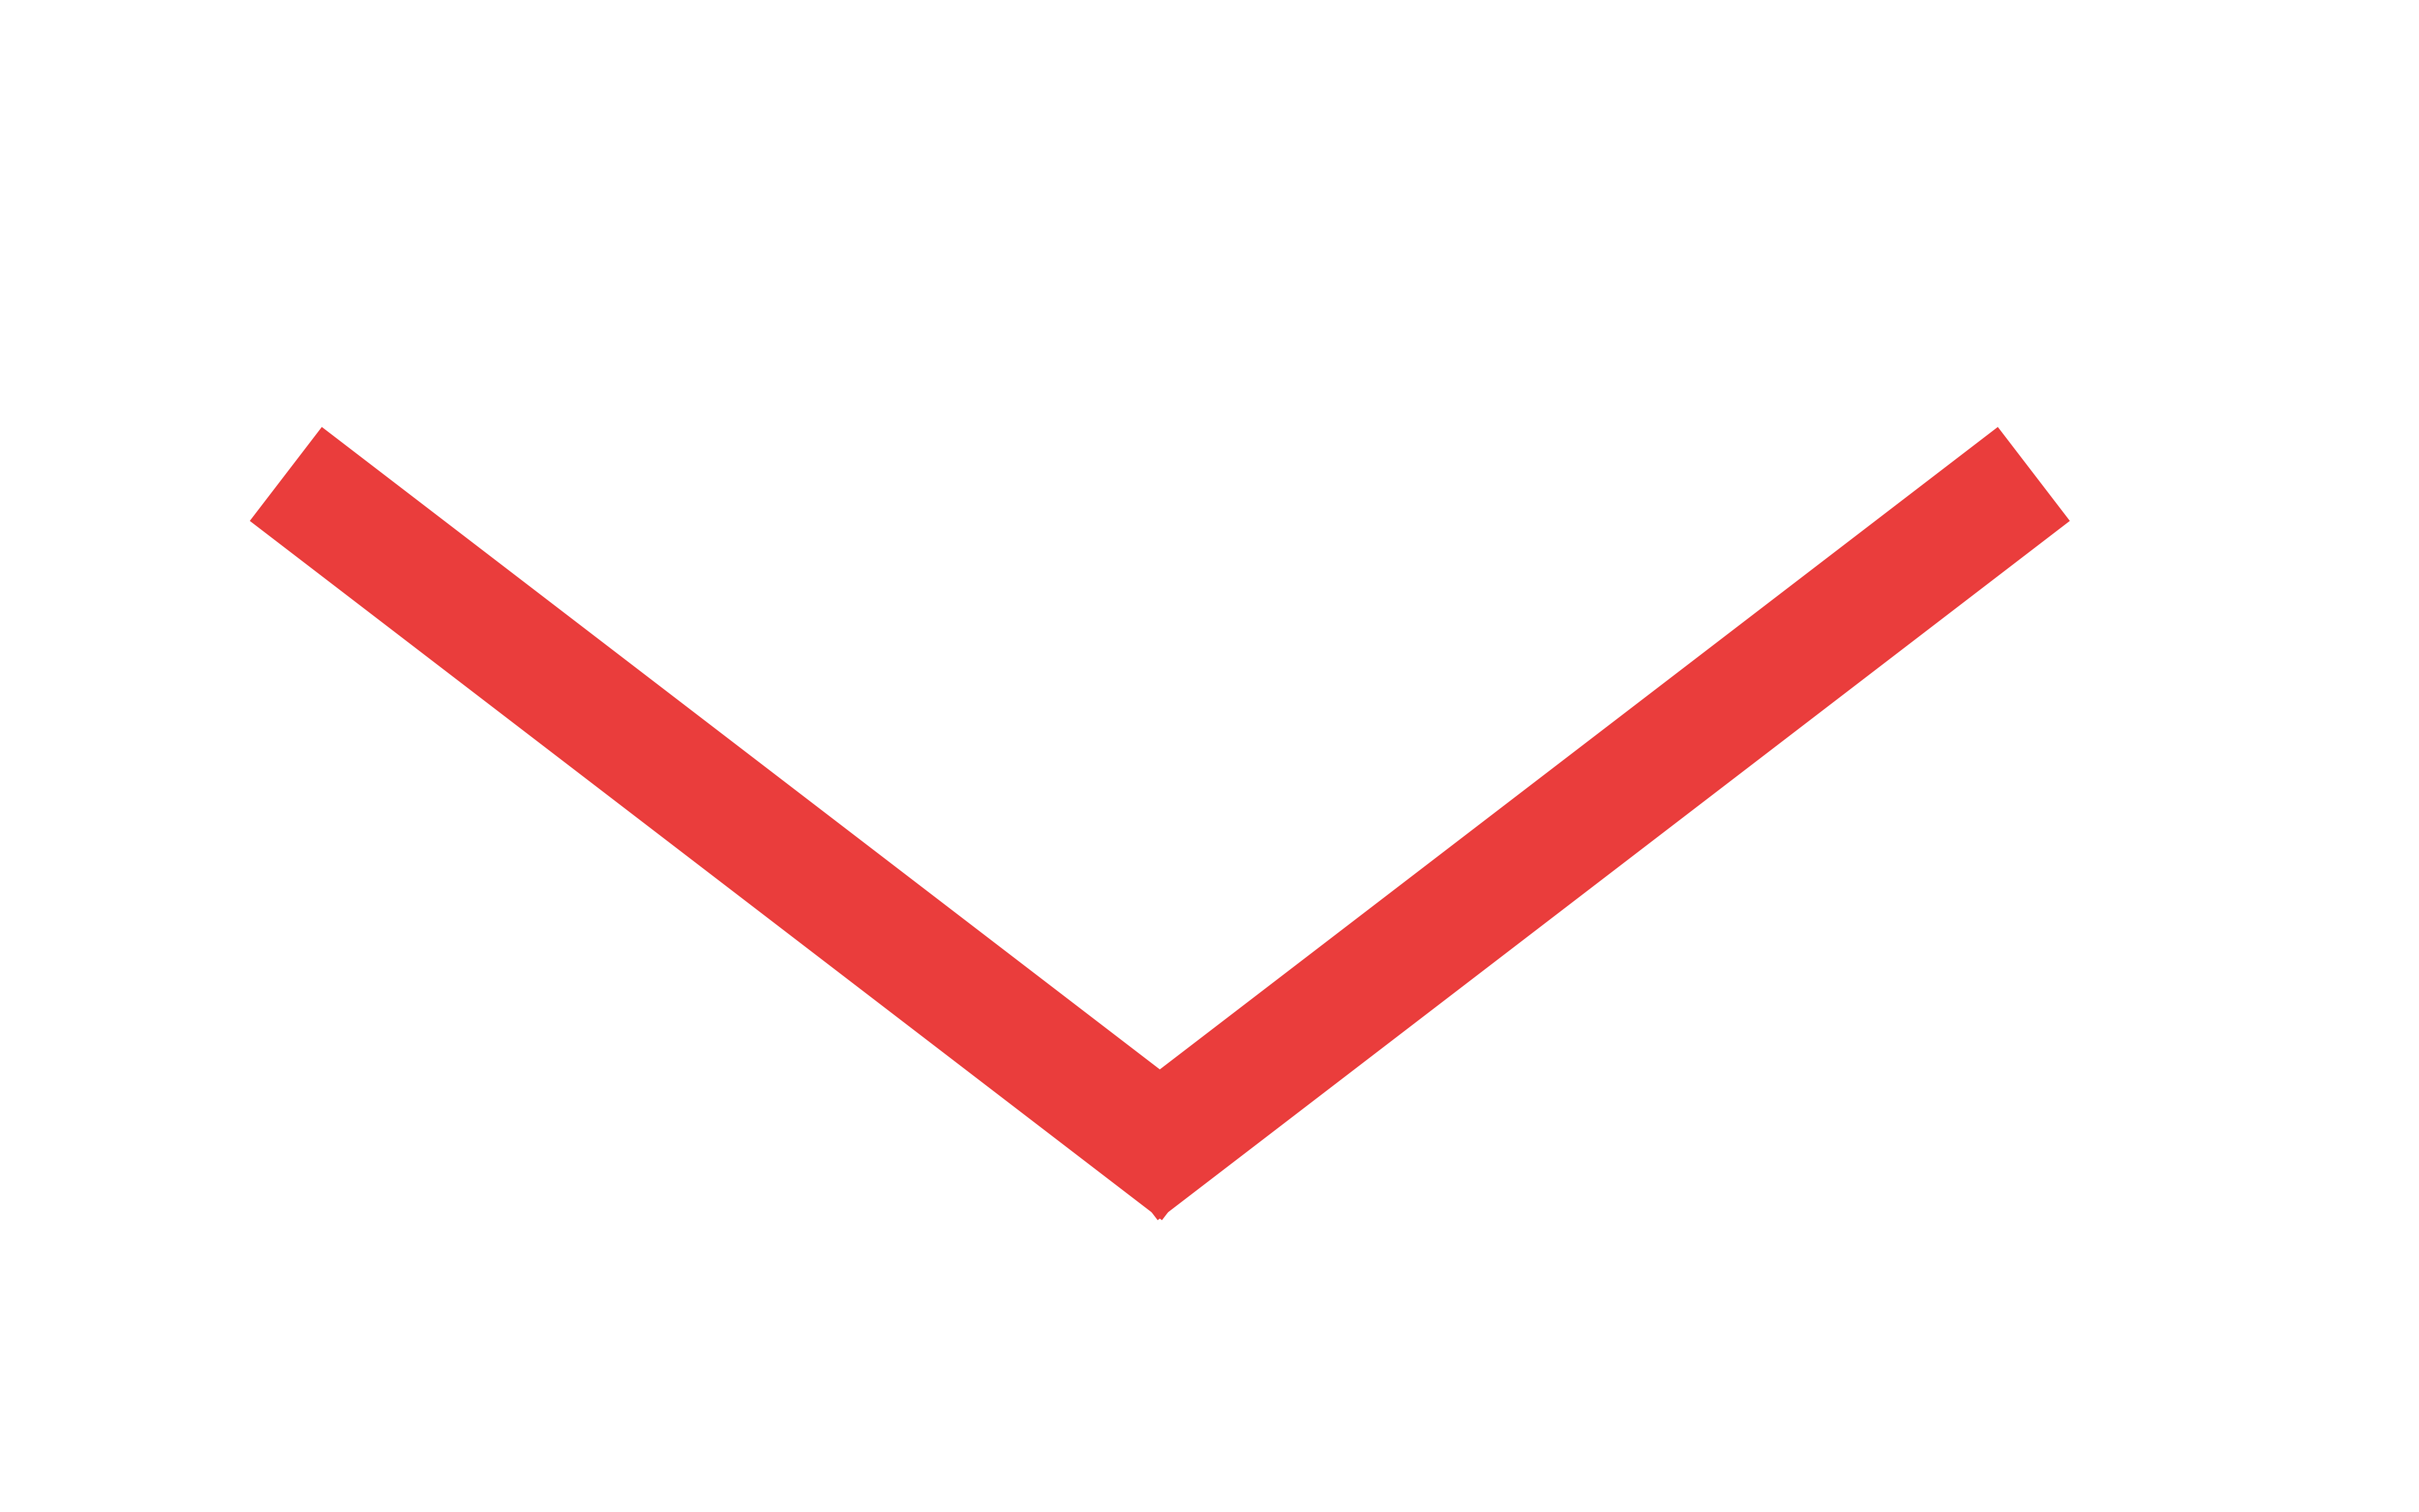 Red scroll arrow